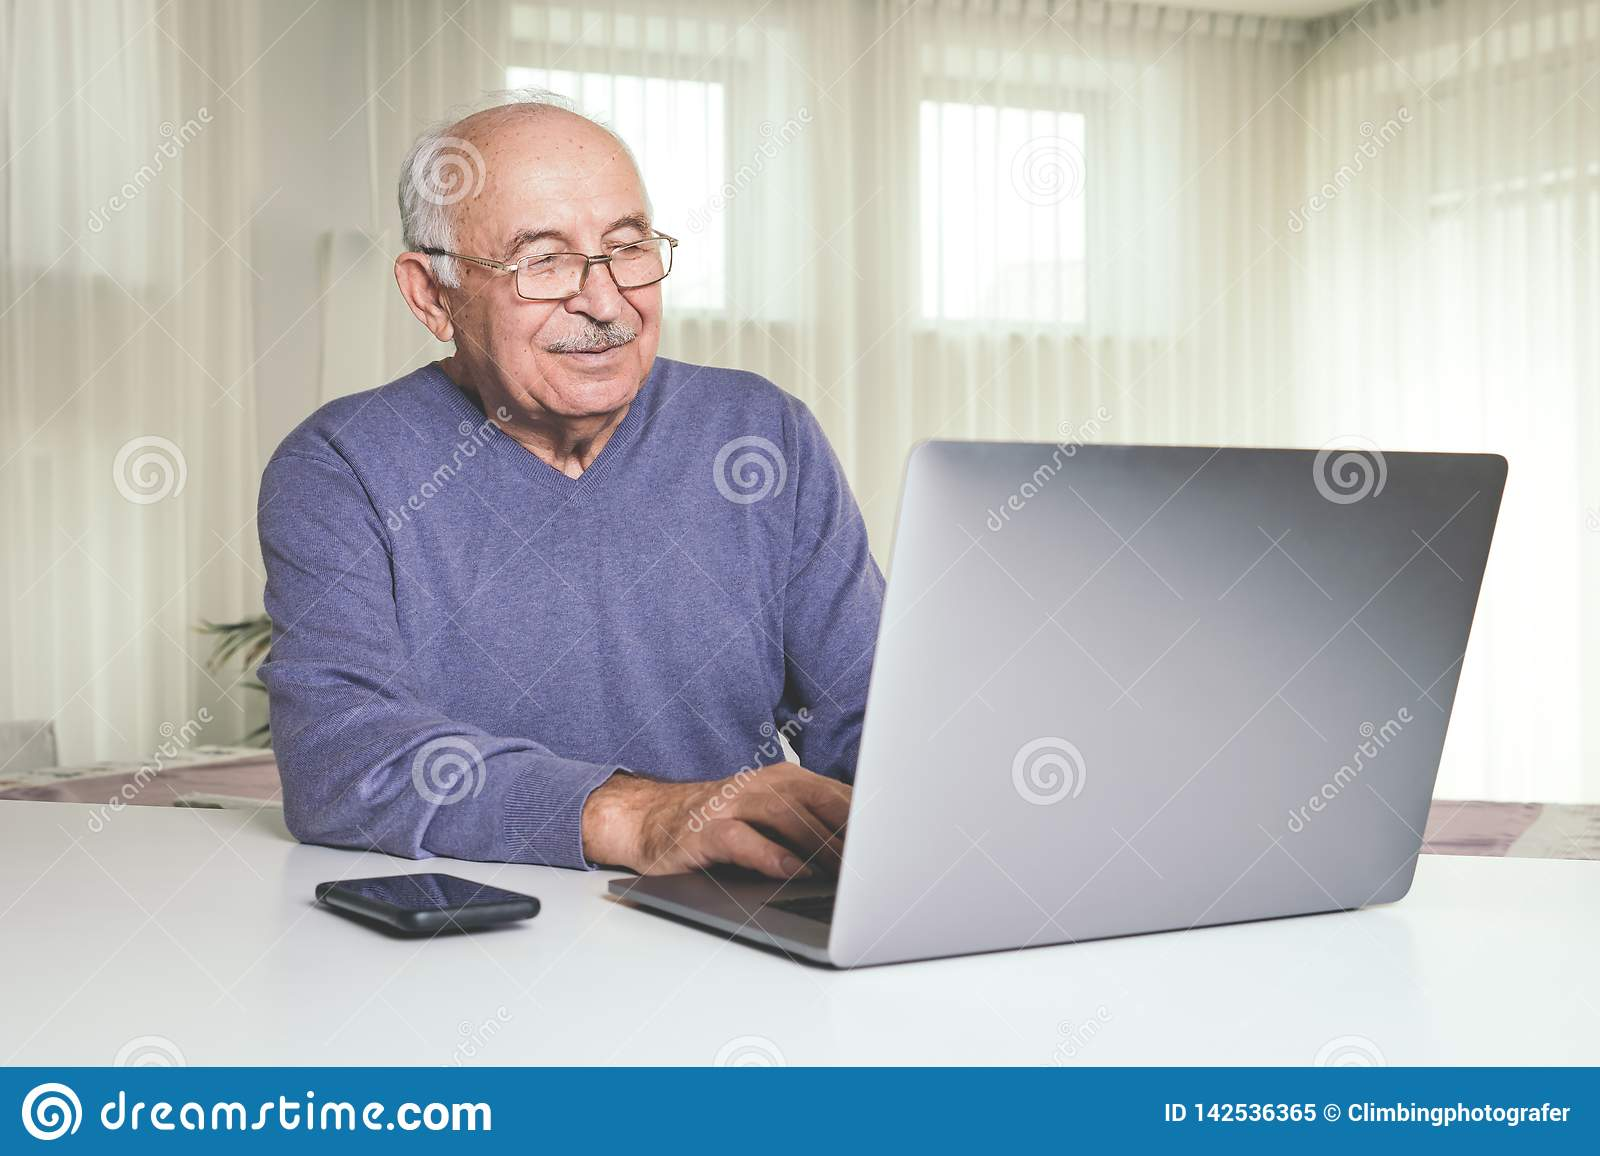 Retired man using computer technologies at home